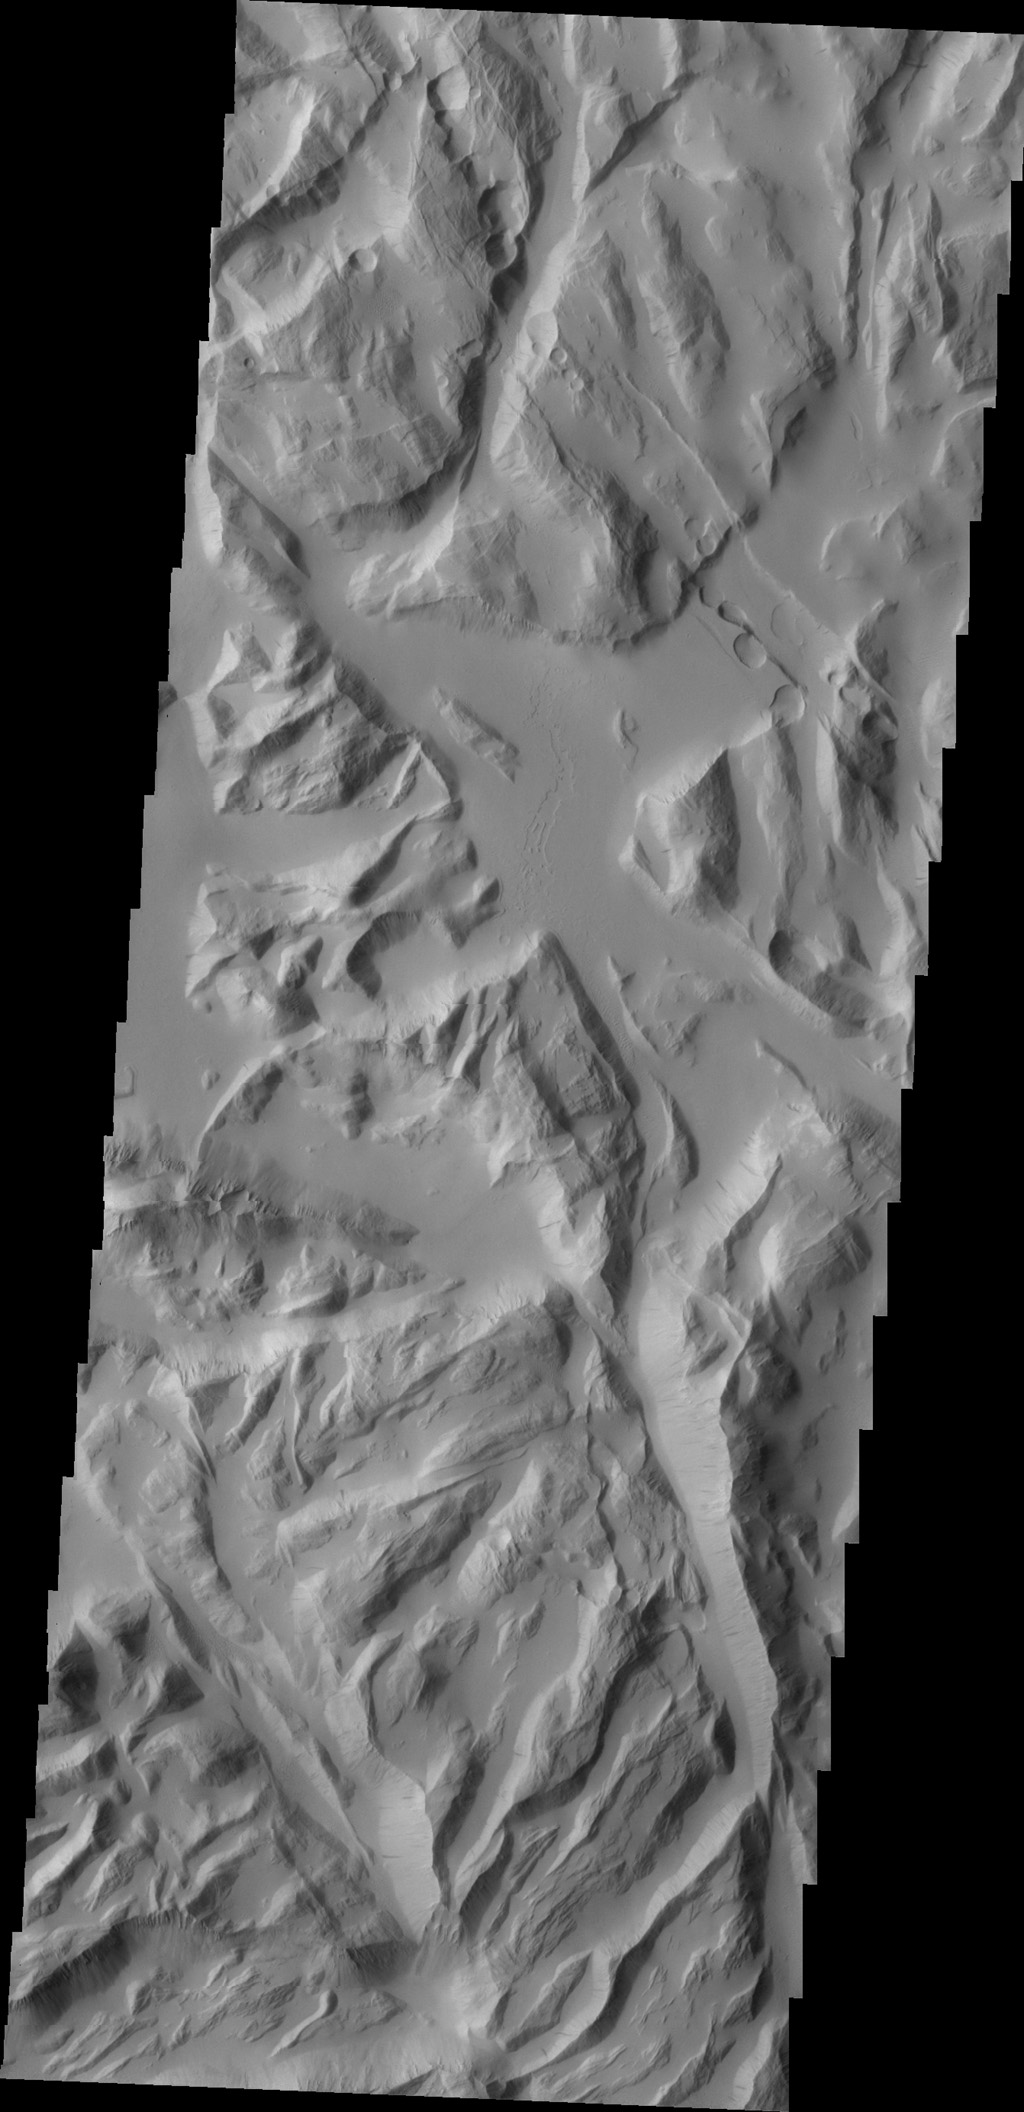 This image captured by NASA's 2001 Mars Odyssey spacecraft shows part of Sulci Gordii, a complexly fractured region east of Olympus Mons.